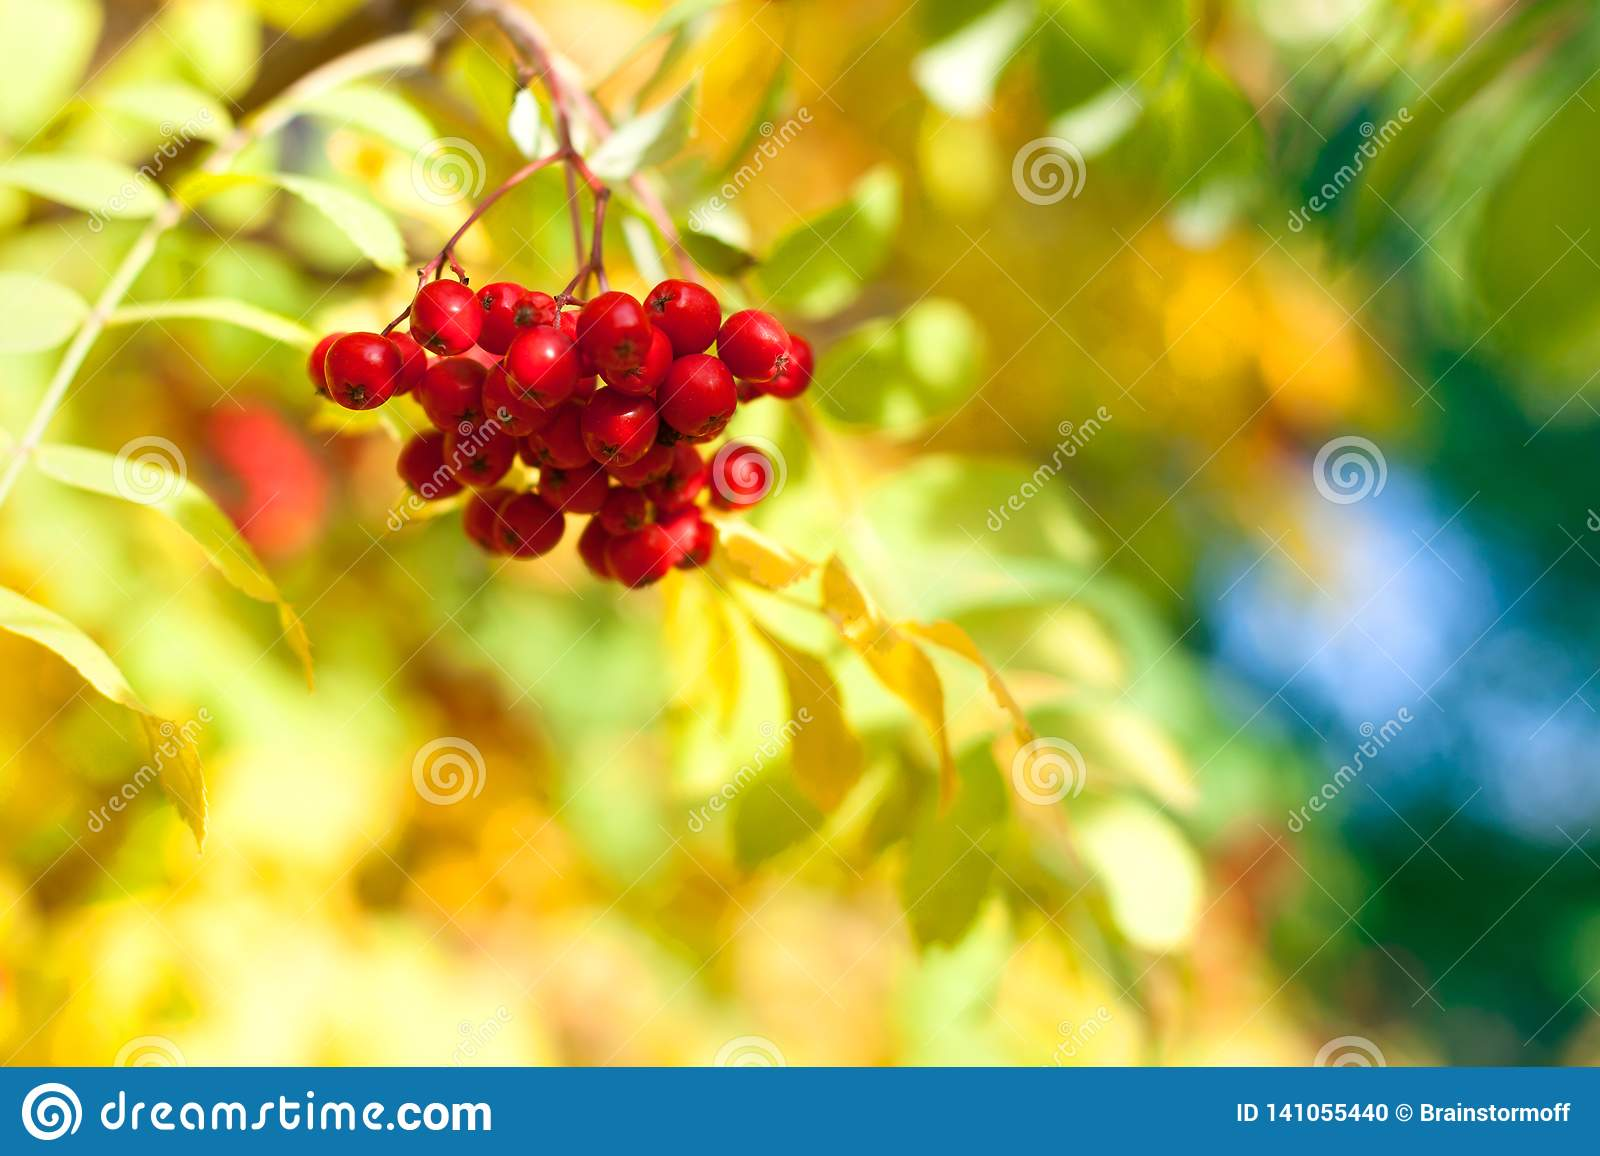 Bunch of red rowan berries on yellow, blue and green autumn leaves bokeh background closeup